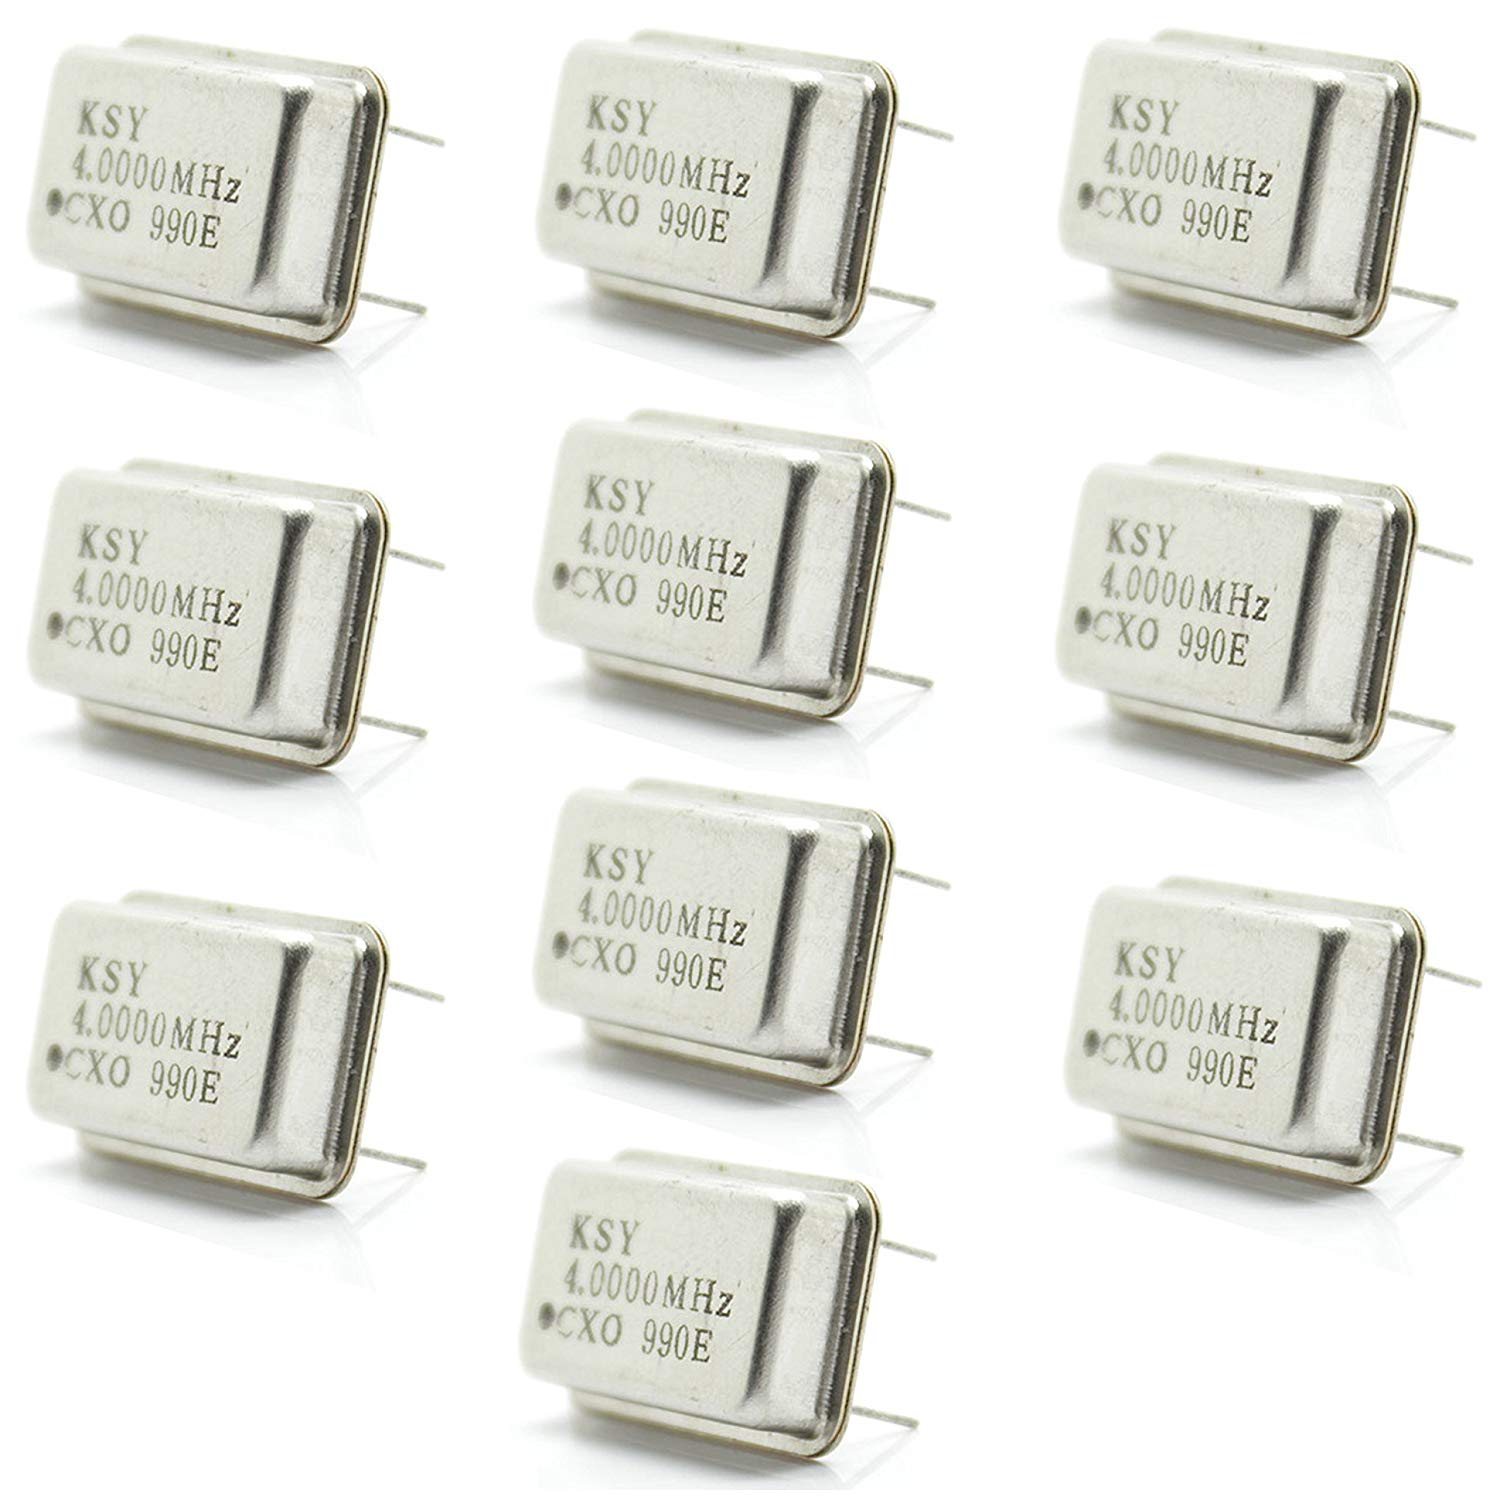 Cheap Quartz Oscillator Circuit Find Clock Get Quotations 10pcs Crystal 4mhz For Microprocessor Microcontroller Precision Frequency Timing Signals Time Tracking With